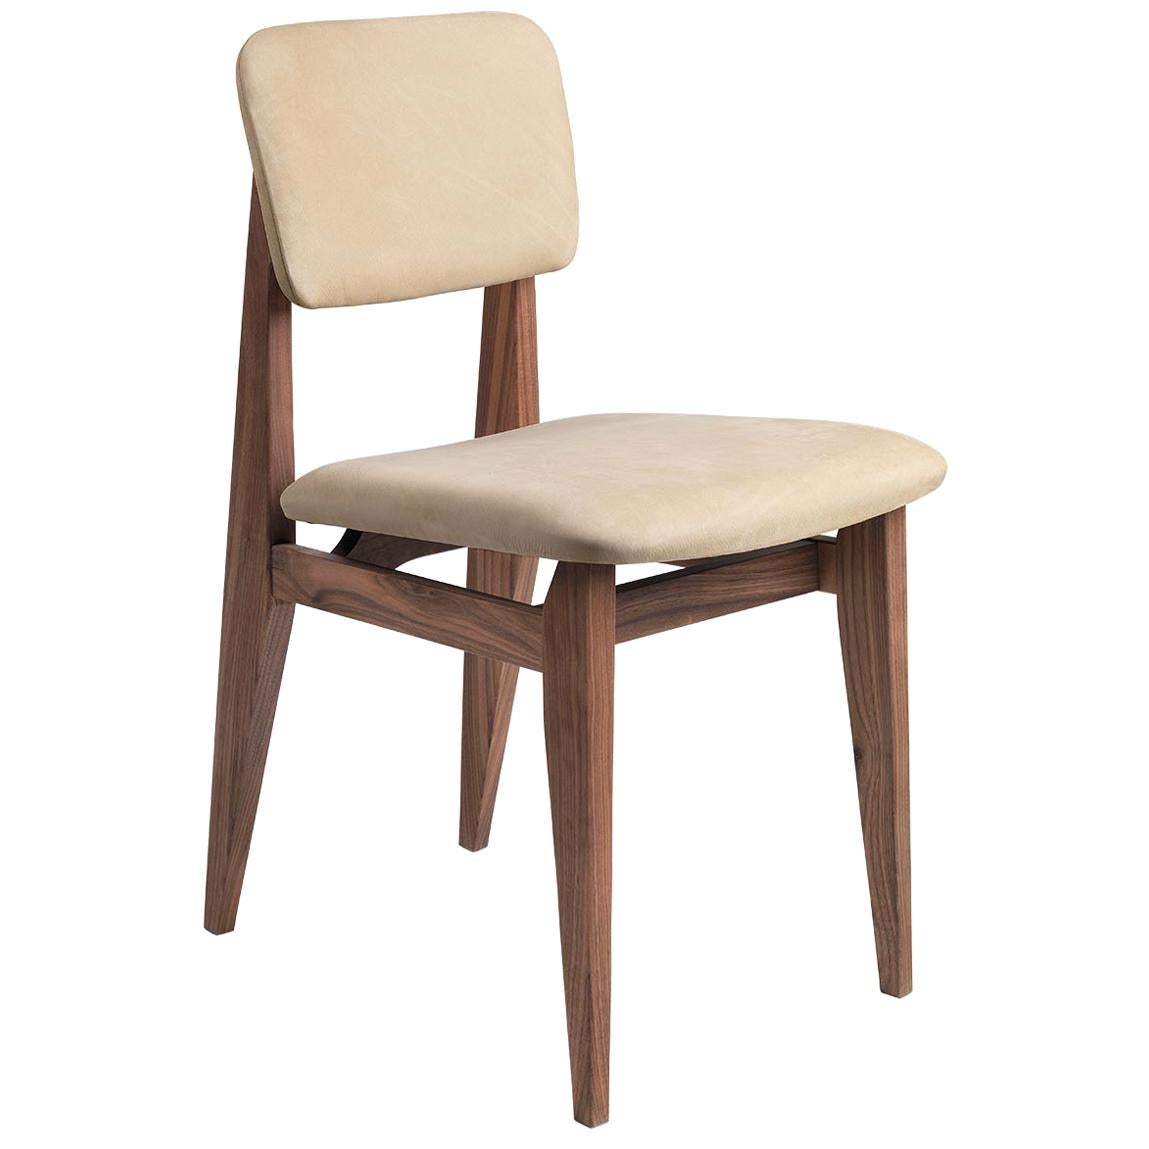 C-Chair Dining Chair, Fully Upholstered, American Walnut